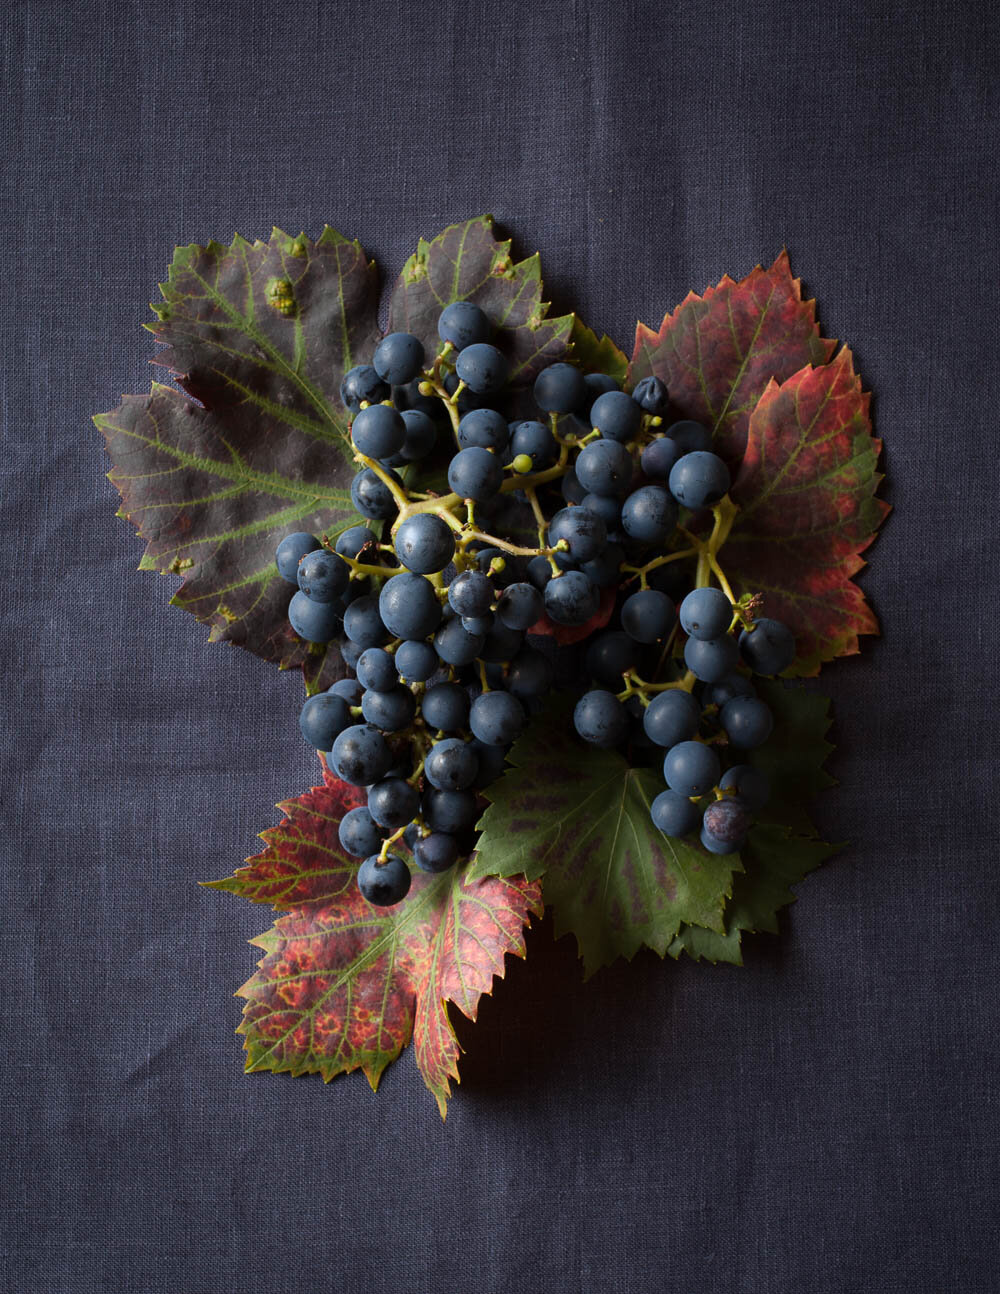 grapes and grape leaves